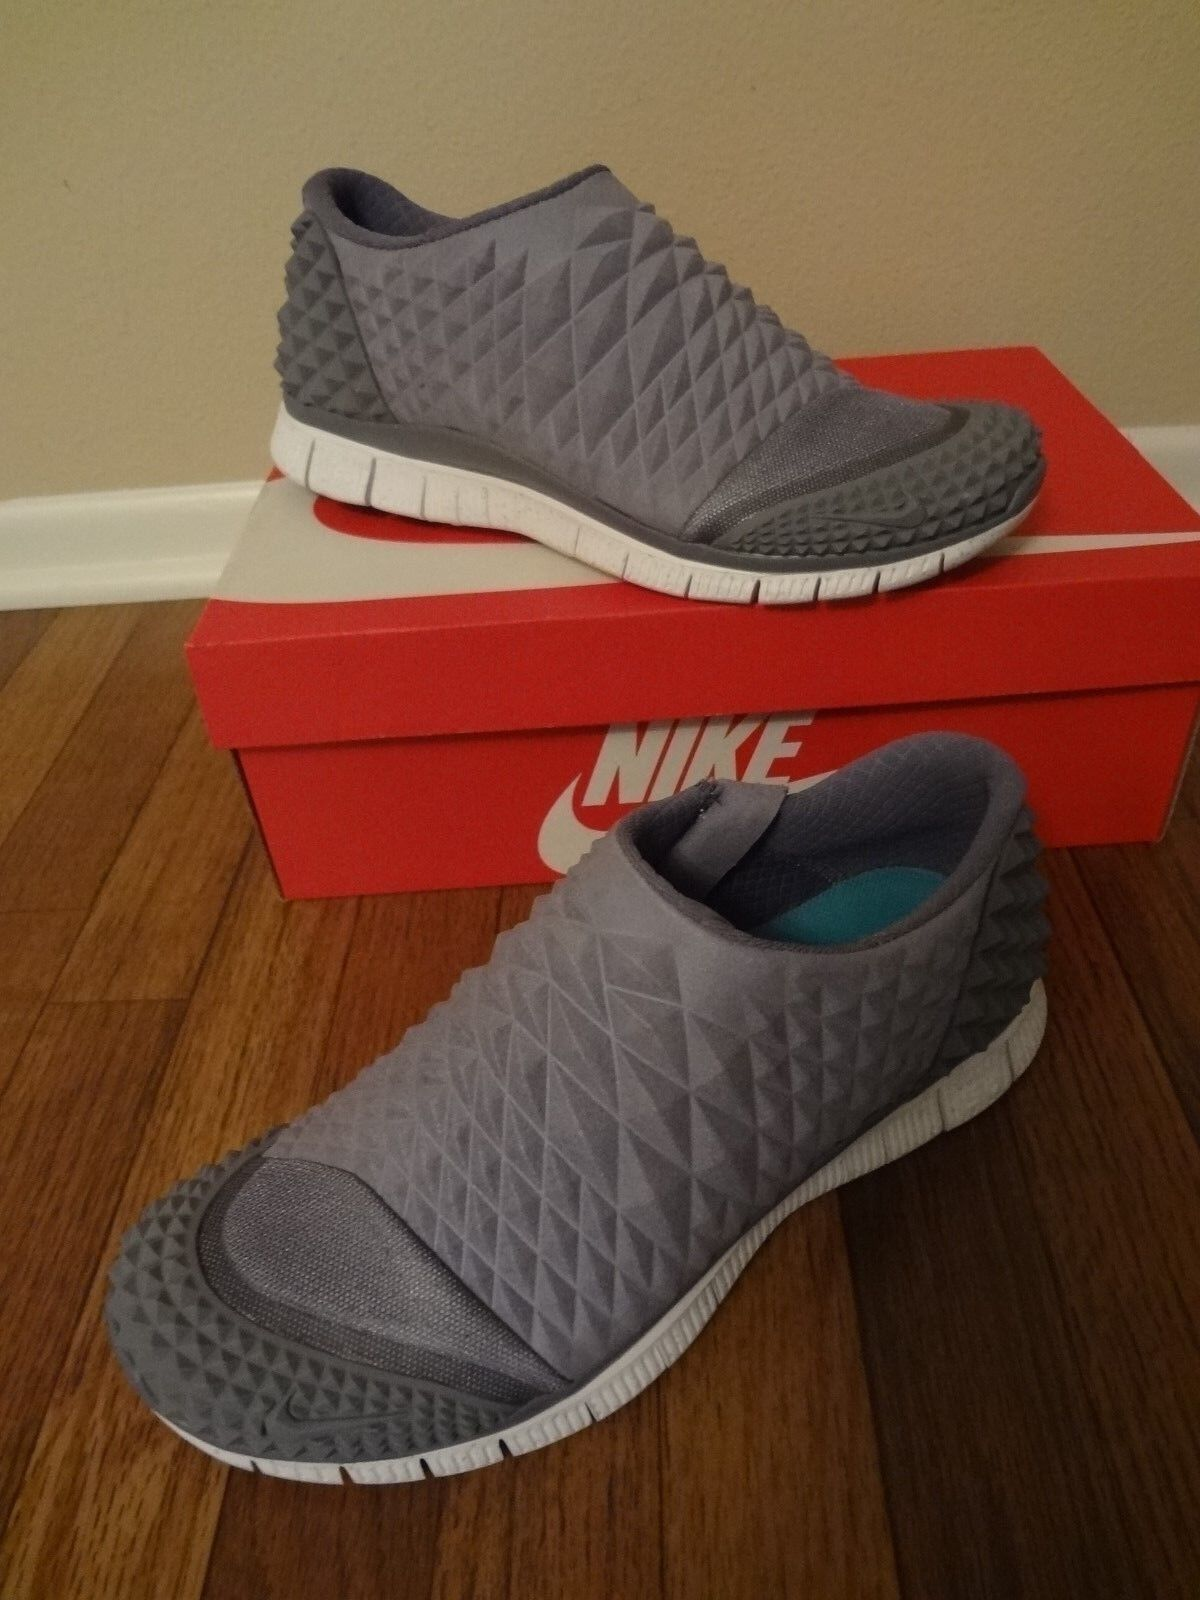 NIKE FREE ORBIT II SP Size 11 Cool Grey 657738 090 Rare DS Limited NIB yeezy og